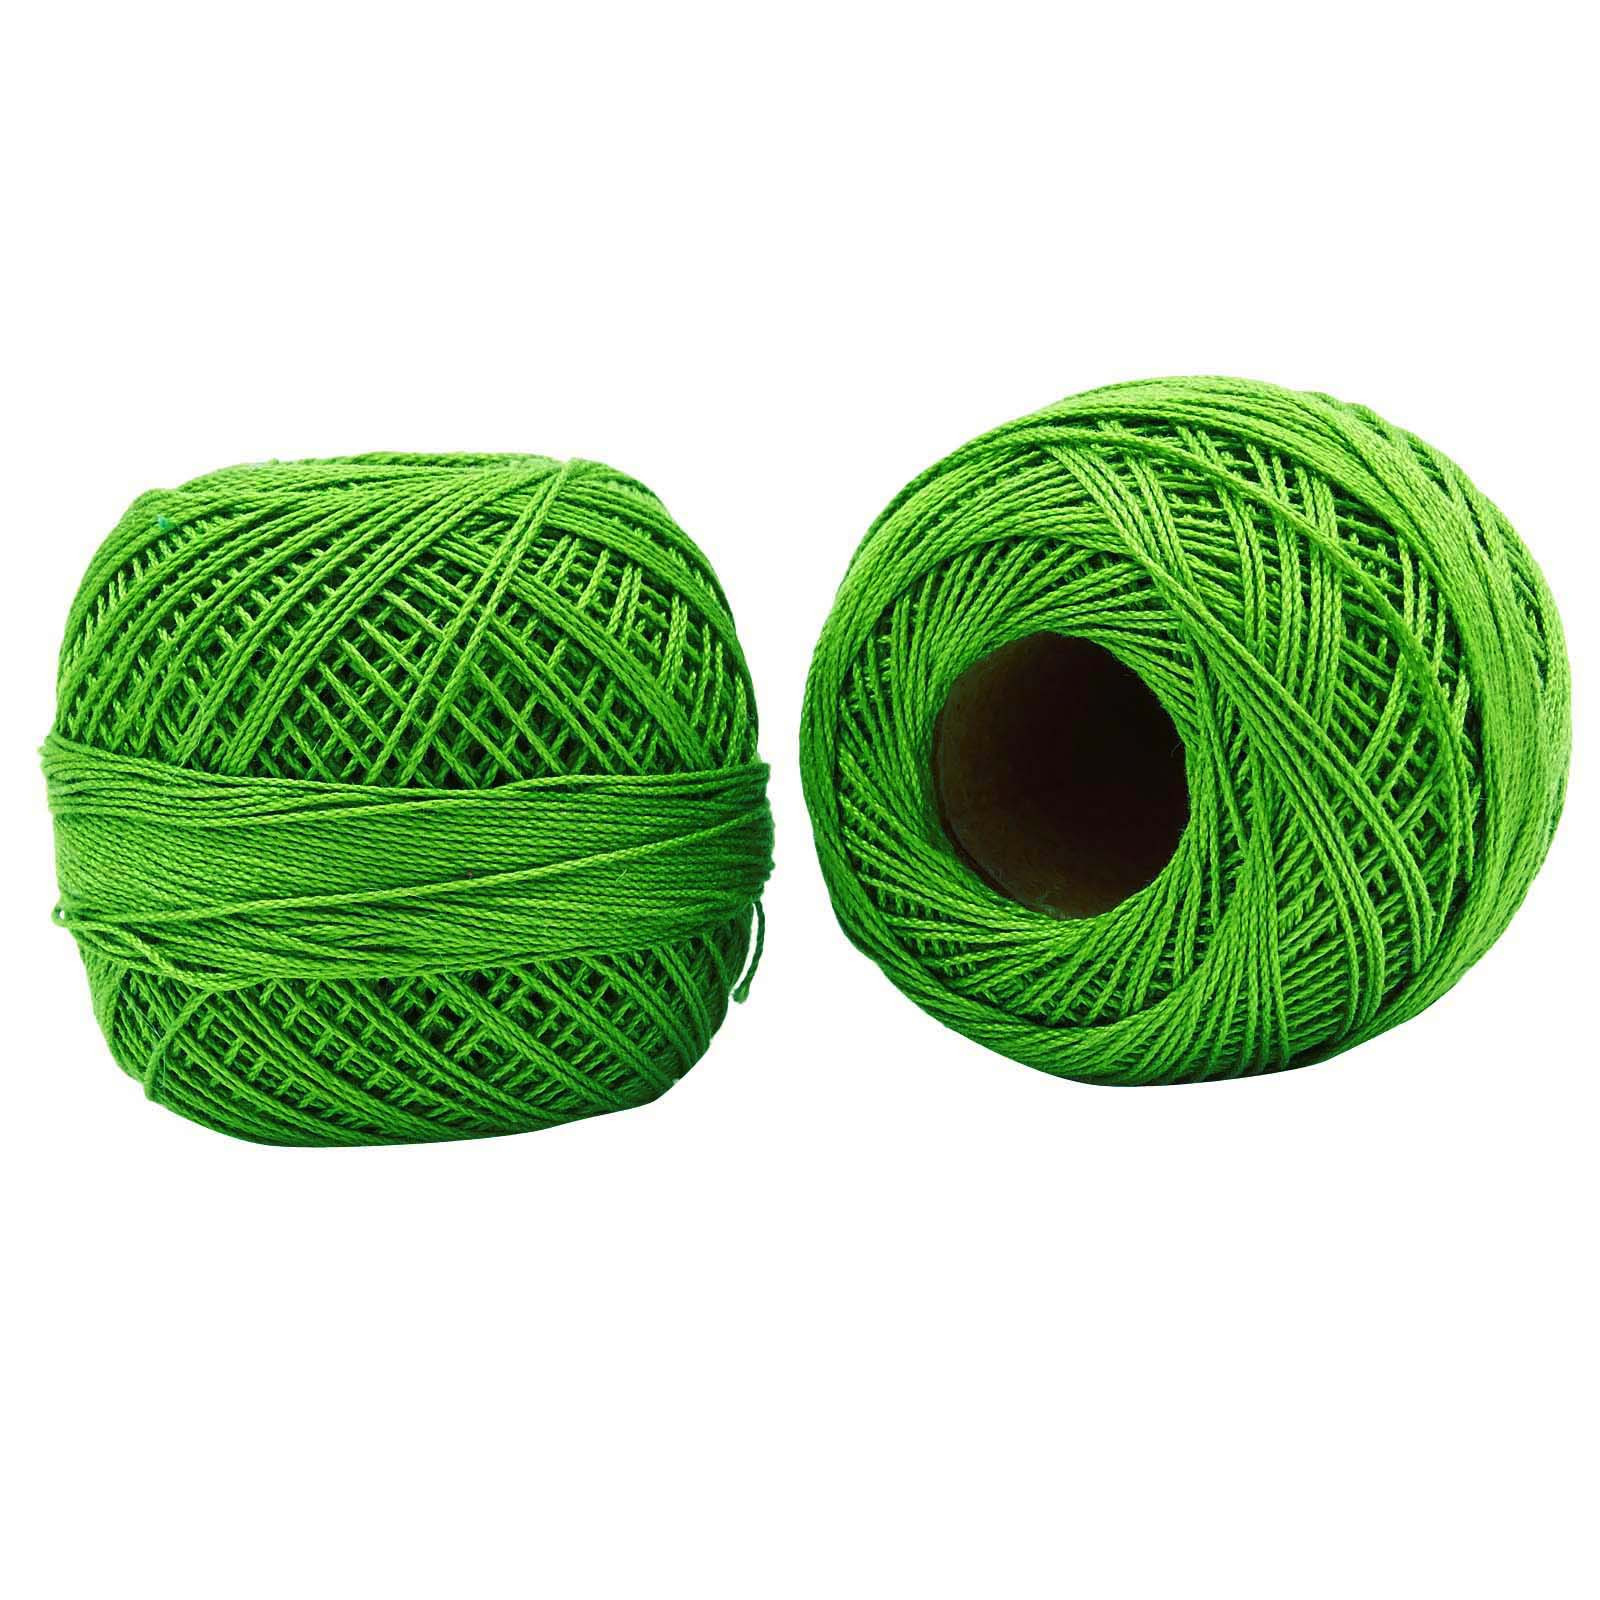 Crochet Thread Awesome Anchor Crochet Polyester Knitting Tatting Ball Embroidery Of Innovative 49 Images Crochet Thread